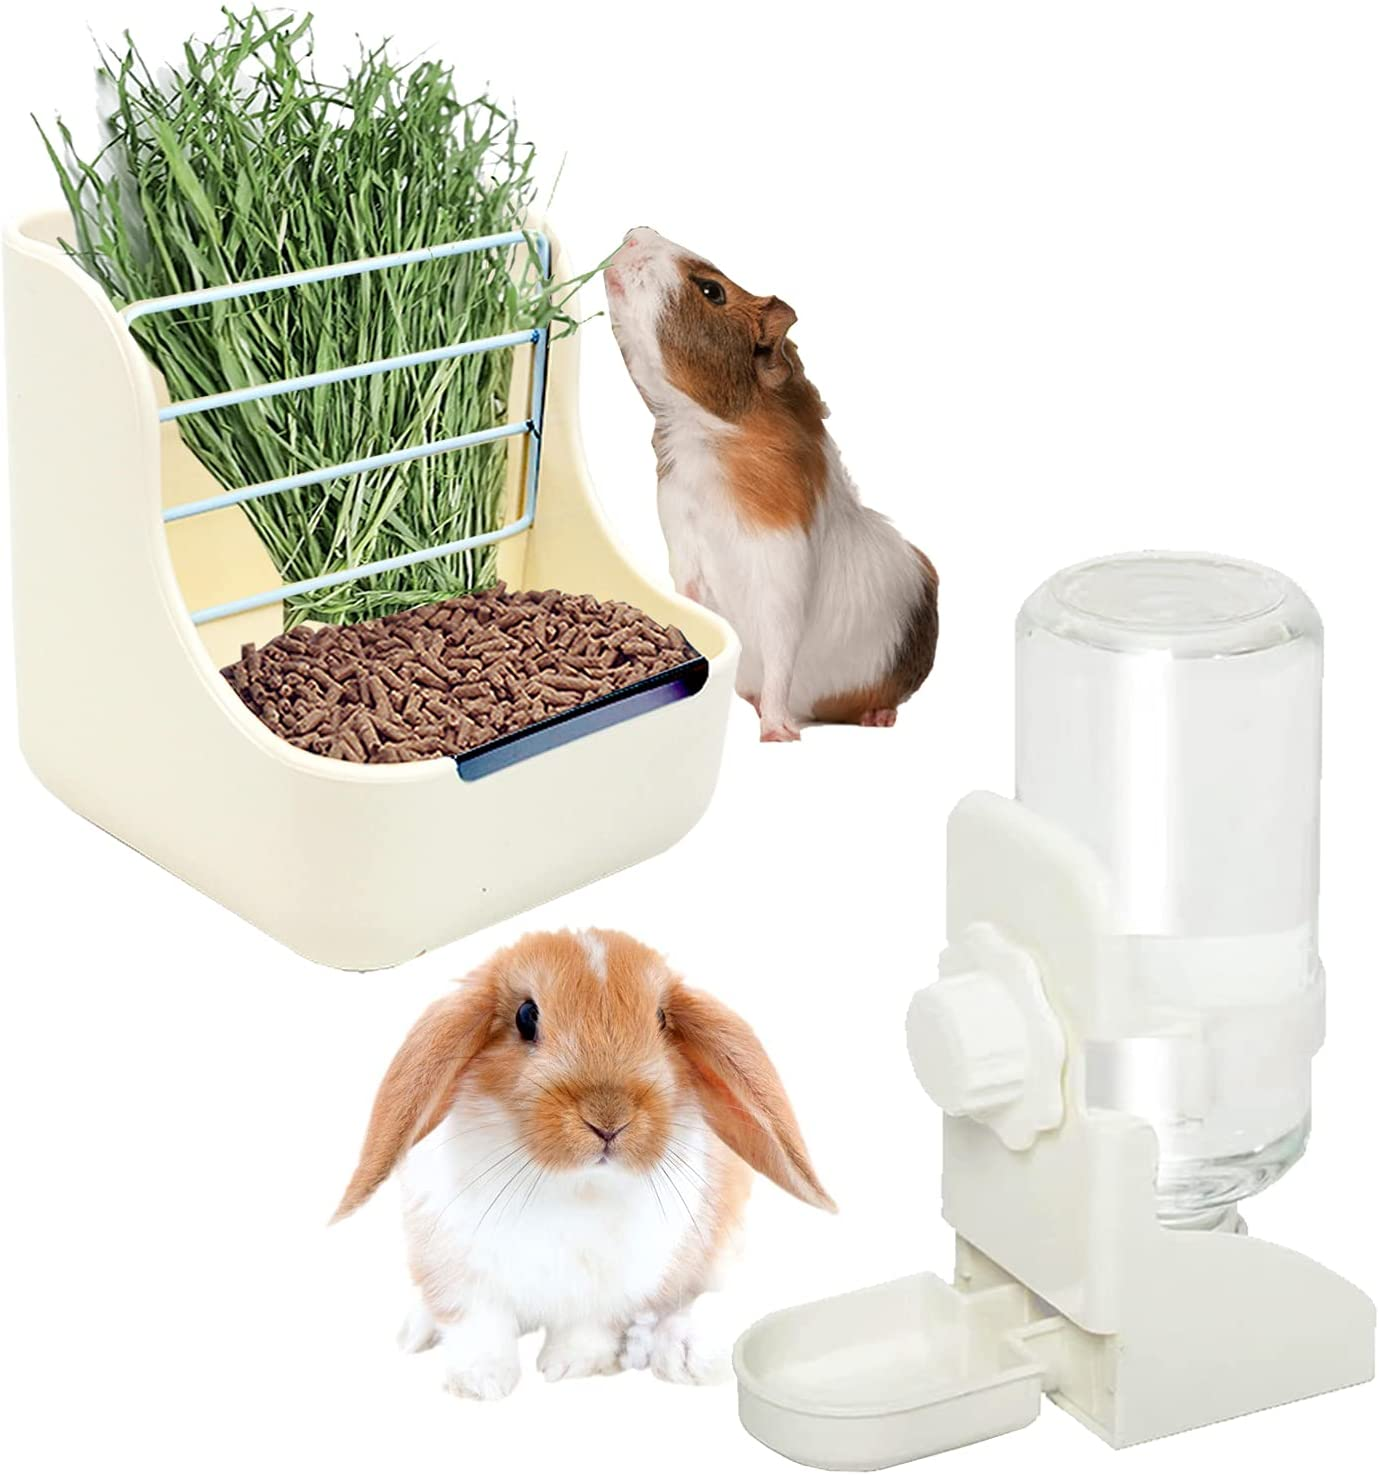 HERCOCCI Rabbit Hay Food Bin Feeder and Bunny Water Bottle Set, Hay Food Feeder Bowls Manger Rack with 500ml Hanging Water Dispenser Prevent Knock Over for Rabbit Guinea Pig Chinchilla Hedgehog